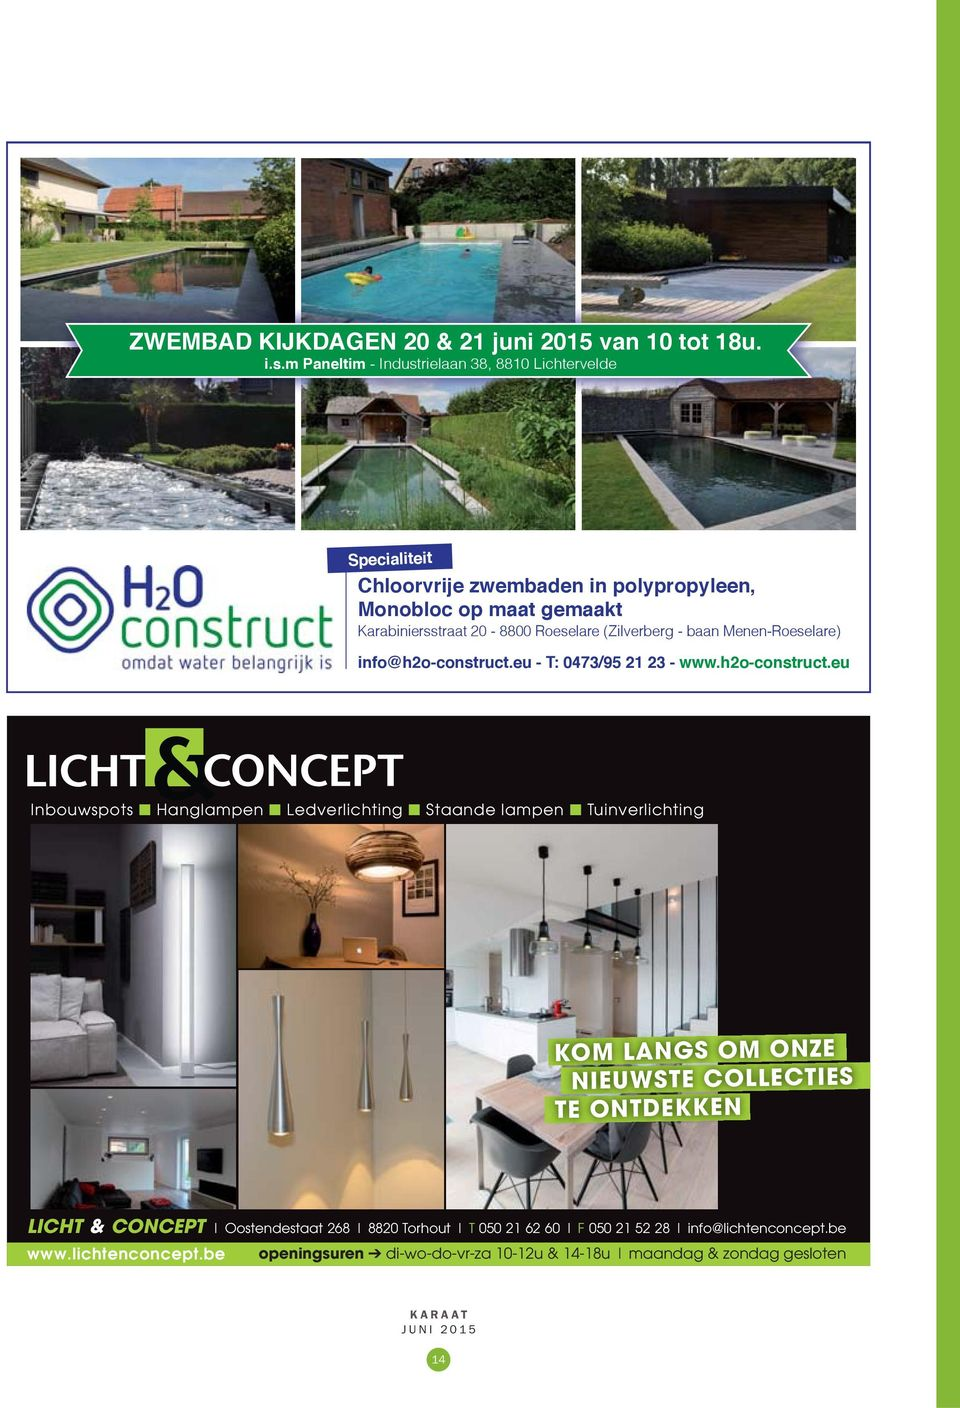 Roeselare (Zilverberg - baan Menen-Roeselare) info@h2o-construct.